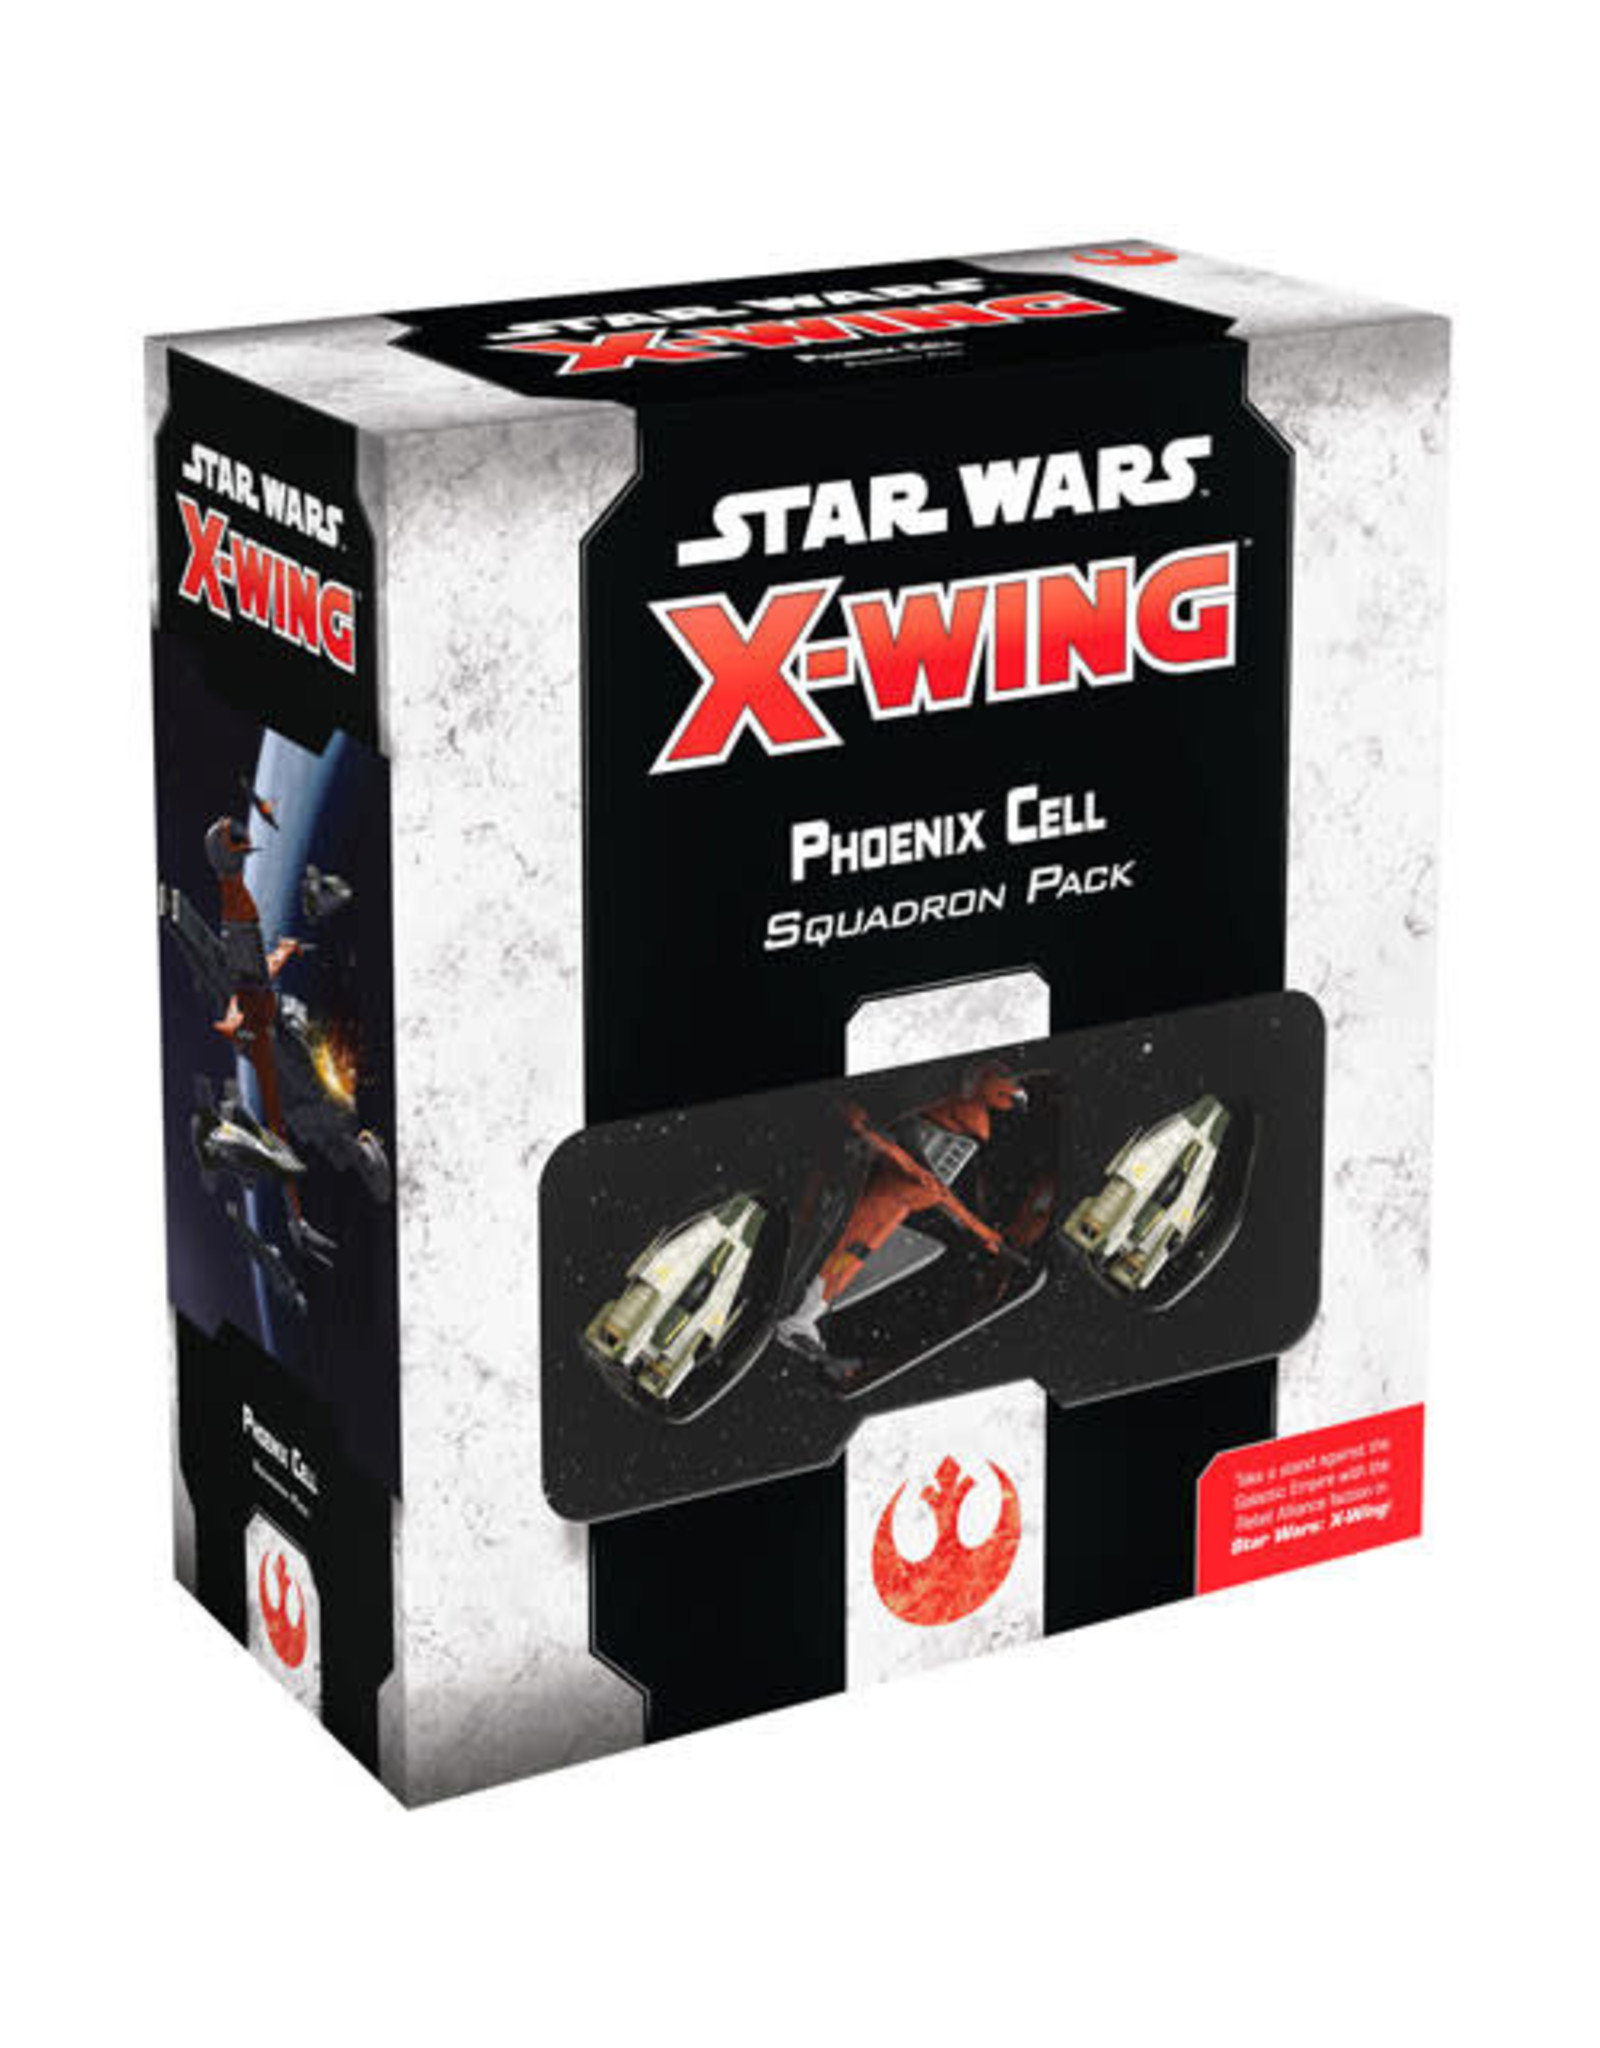 Star Wars X-Wing 2e: Phoenix Cell Squadron Pack